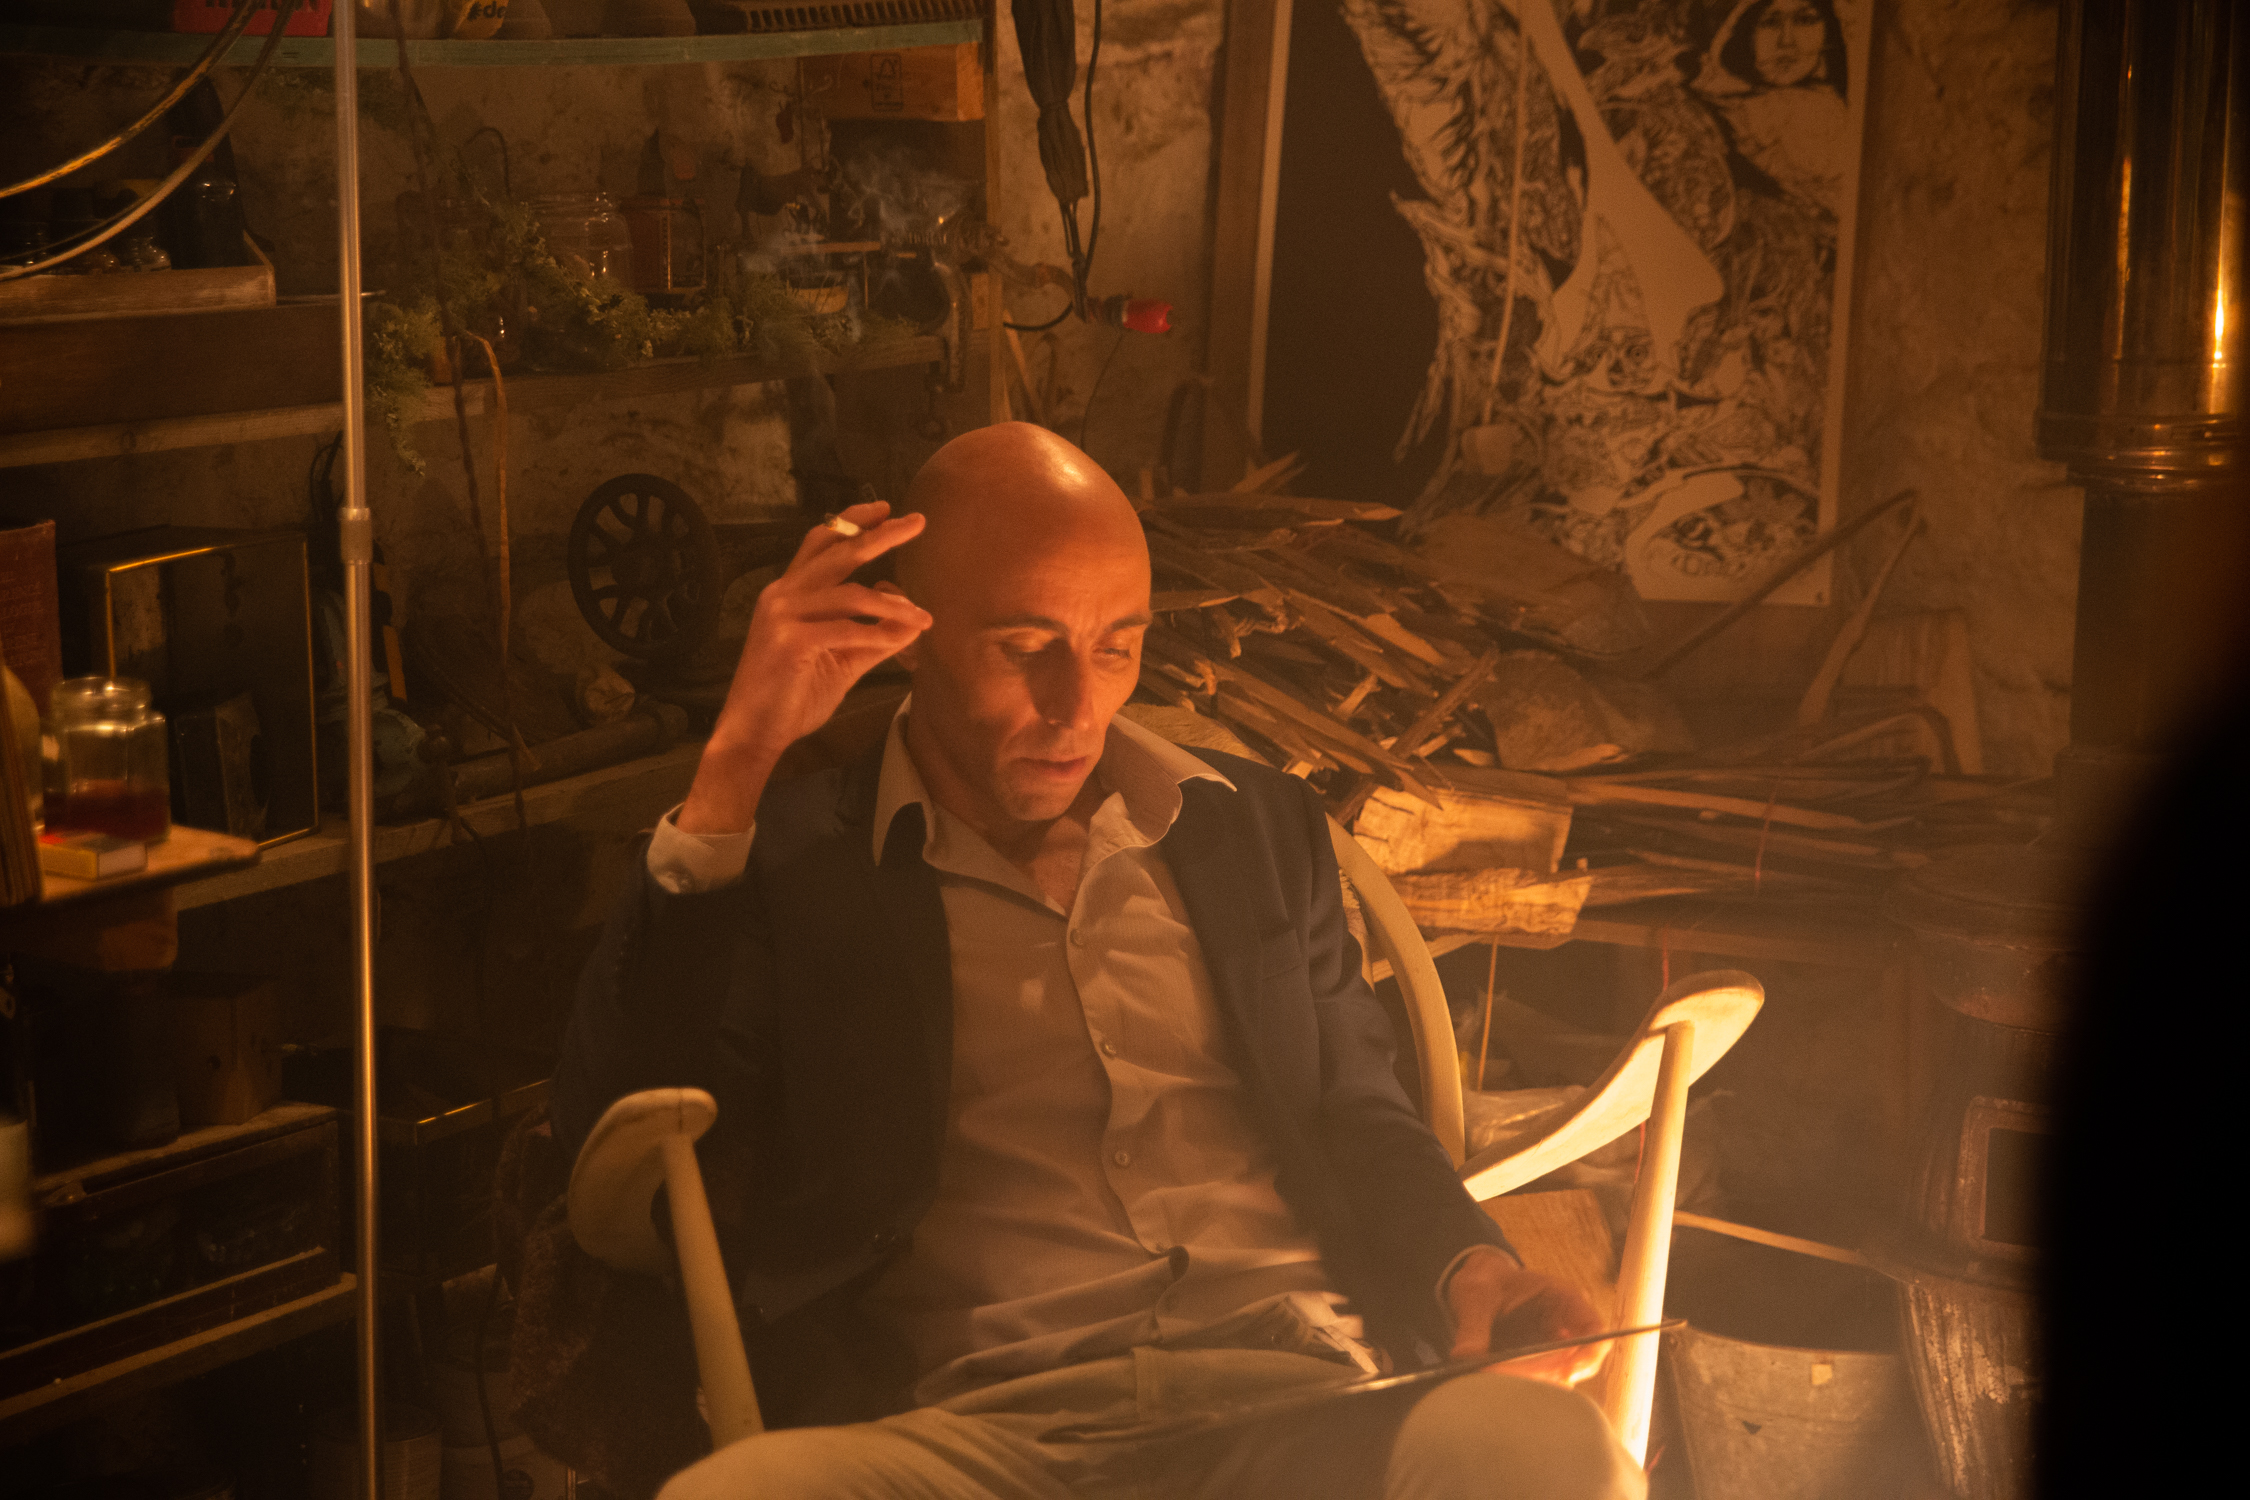 A bald man wearing a collared shirt and suit jacket while sitting in a chair. His left hand is raised to his head and he looks deeply in thought, with a workshop full of odd objects as his backdrop.